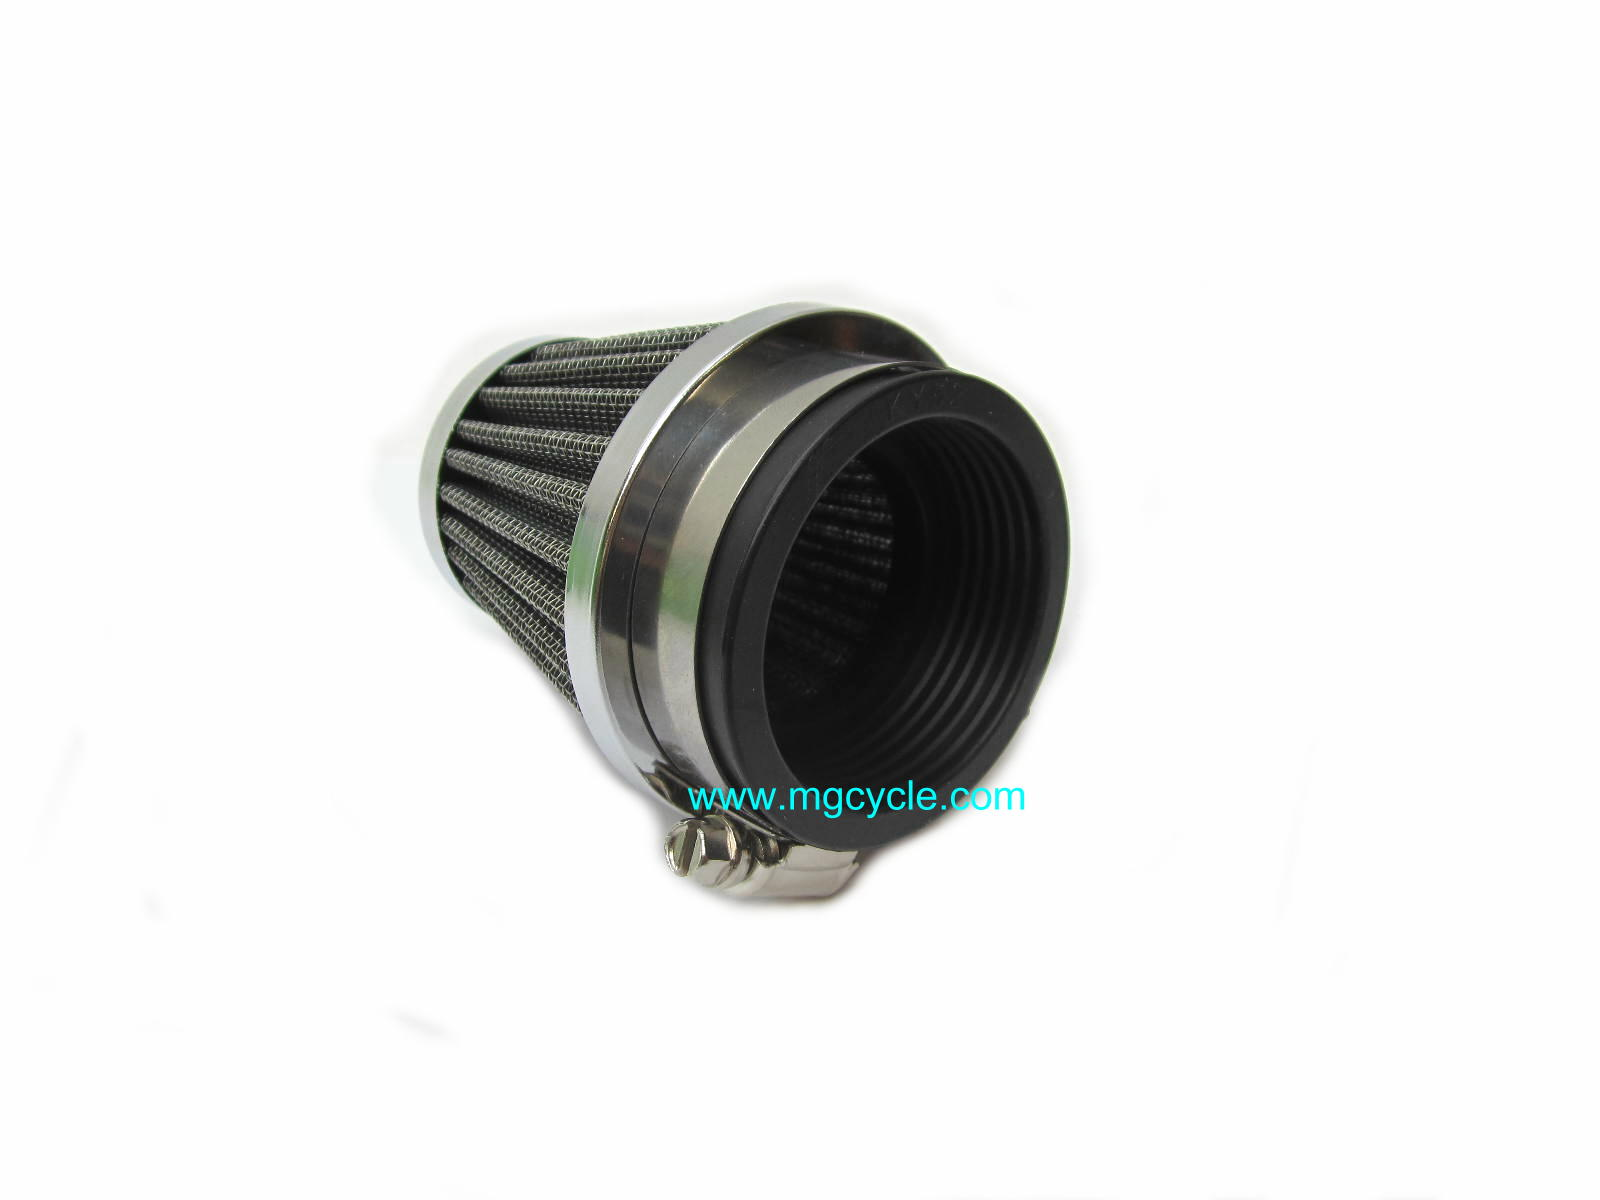 conical air filter pod for PHM38 and PHM40 carburetors